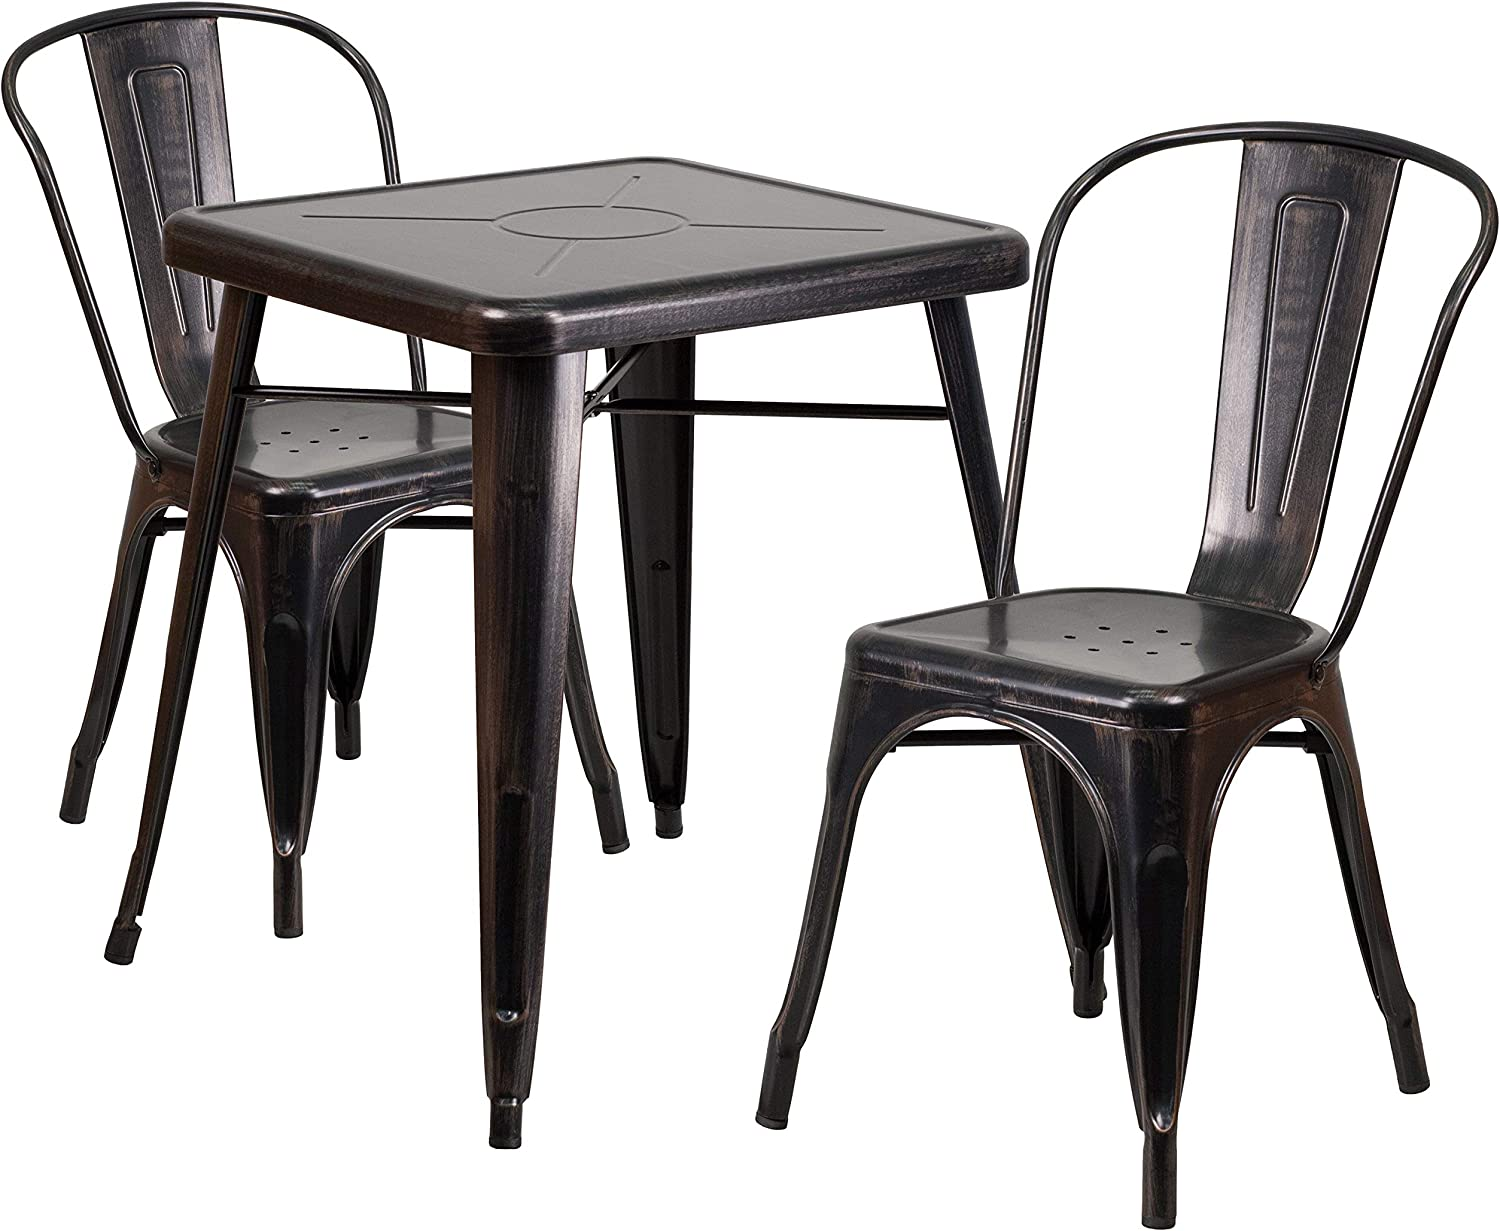 Flash Furniture 23.75 Square Black-Antique Gold Metal Indoor-Outdoor Table Set with 2 Stack Chairs